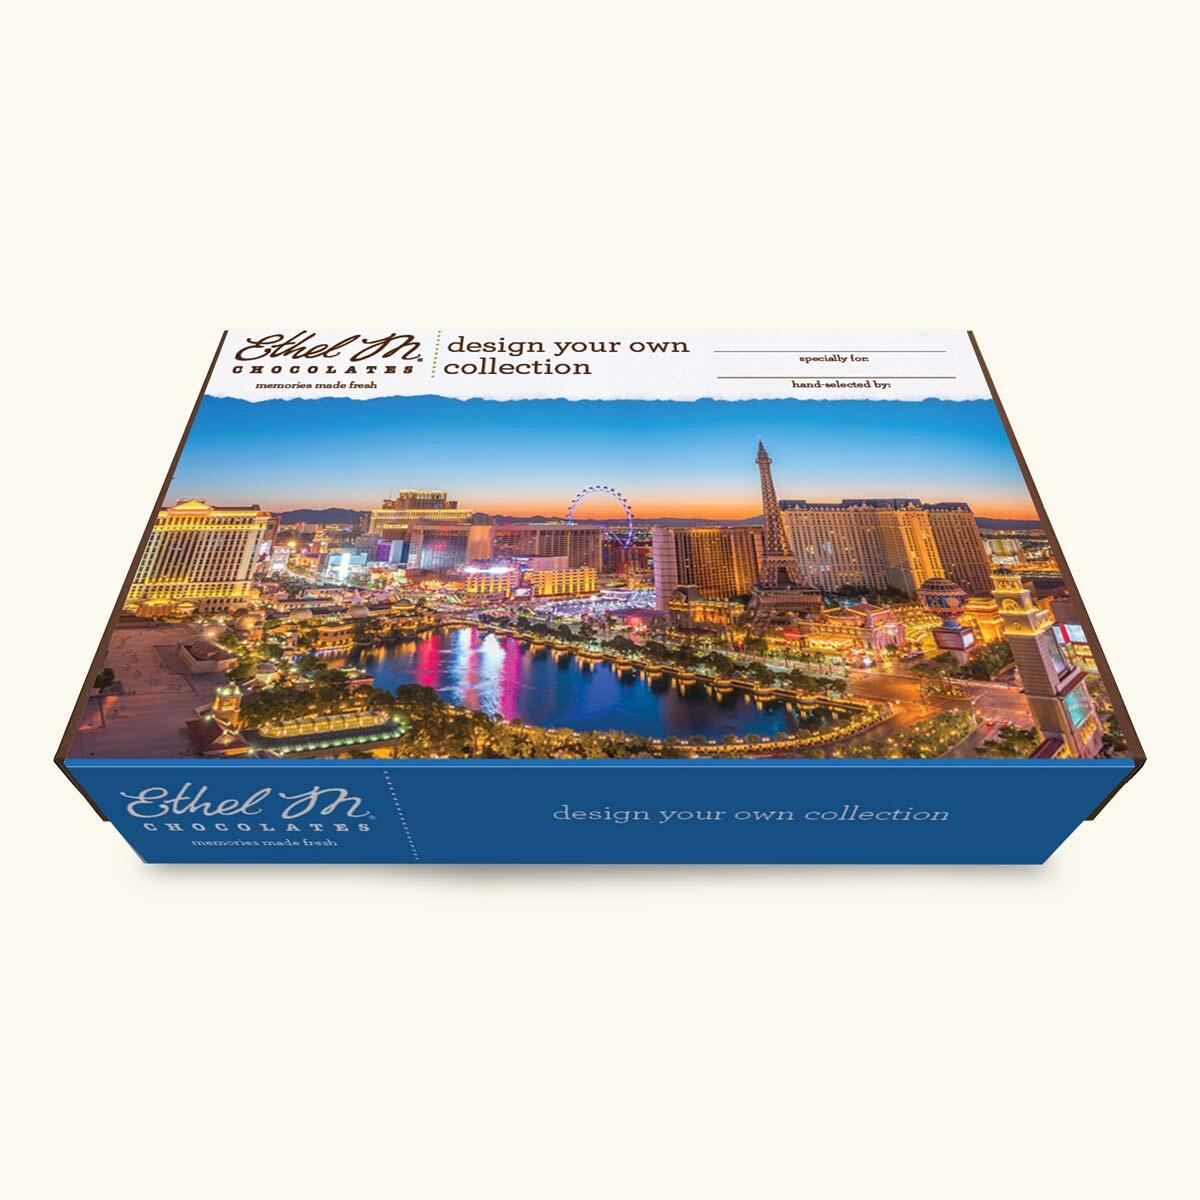 Design Your Own LAS VEGAS Chocolate Assortment, Two-Layer Collection, 40-80 Total Pieces